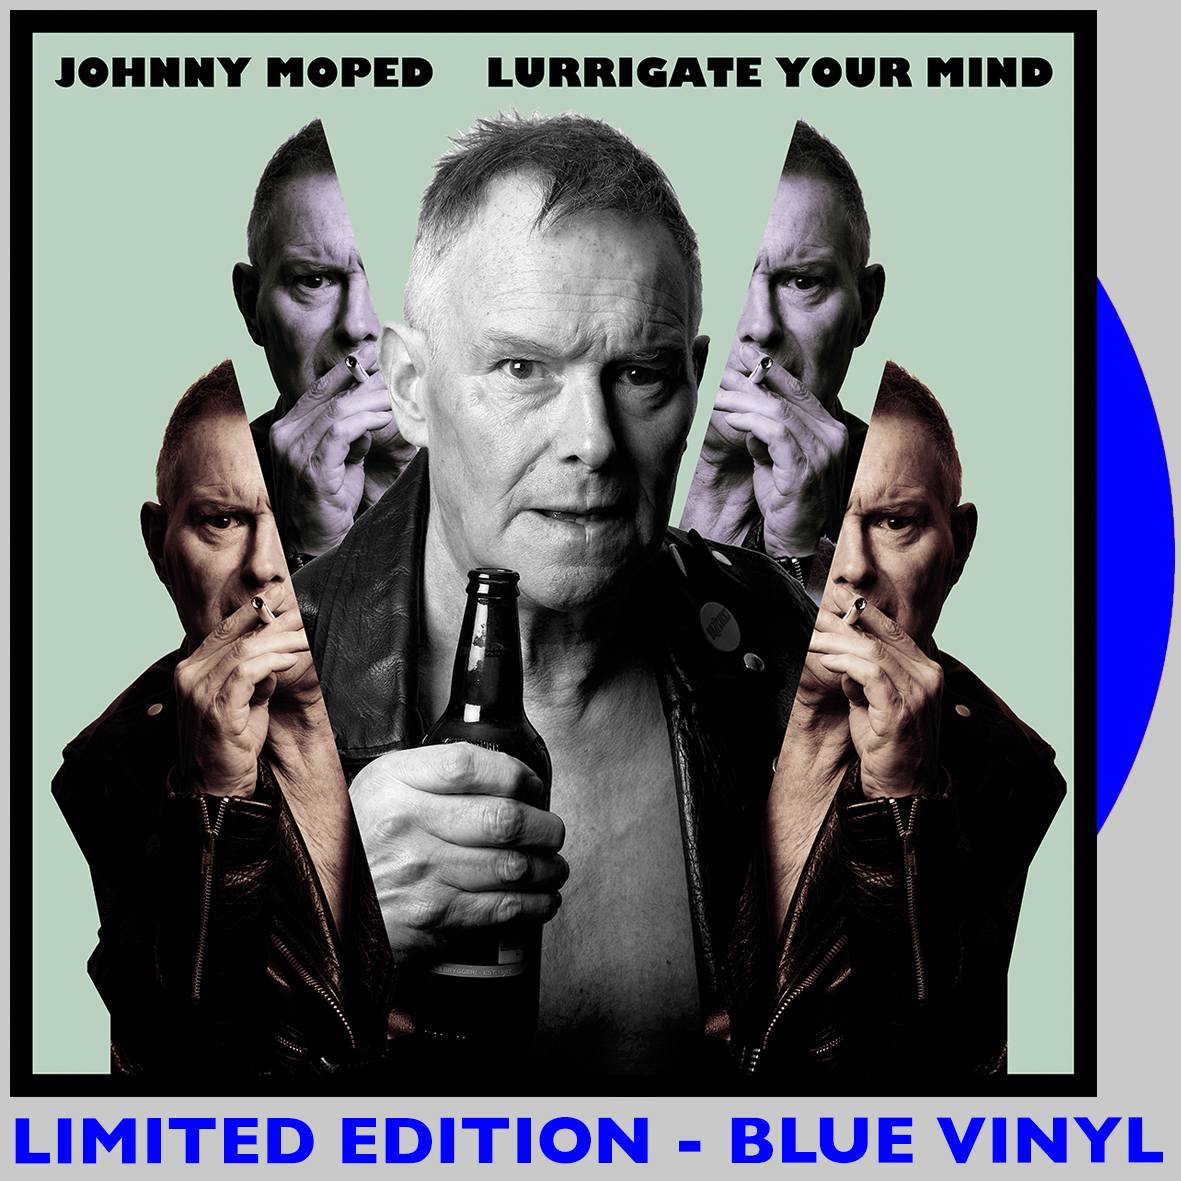 Johnny Moped - Lurrigate Your Mind - BLUE VINYL LP